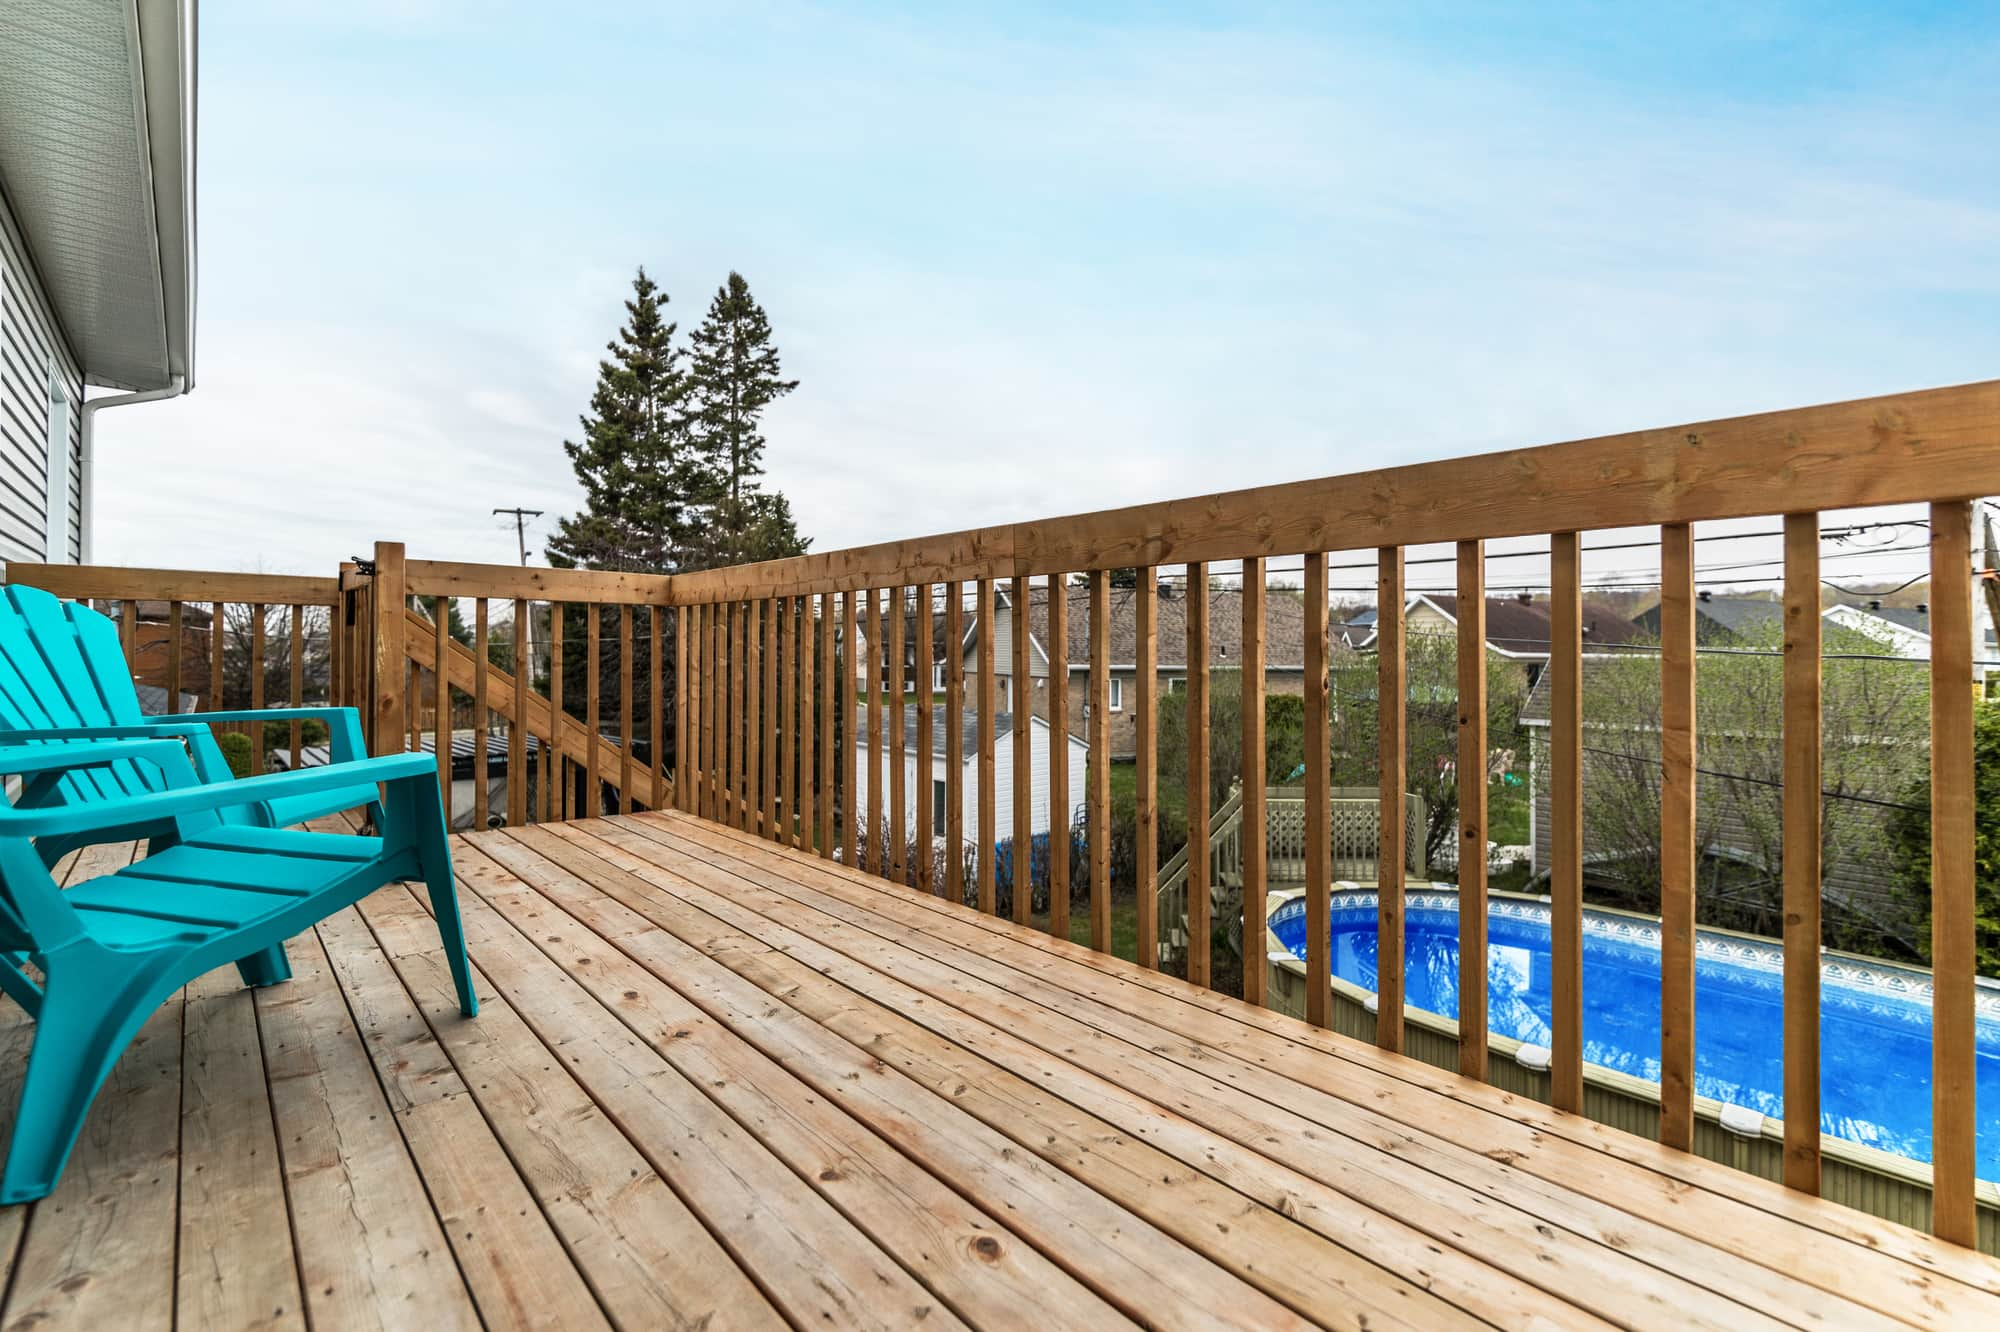 A wood balcony with two turquoise chairs